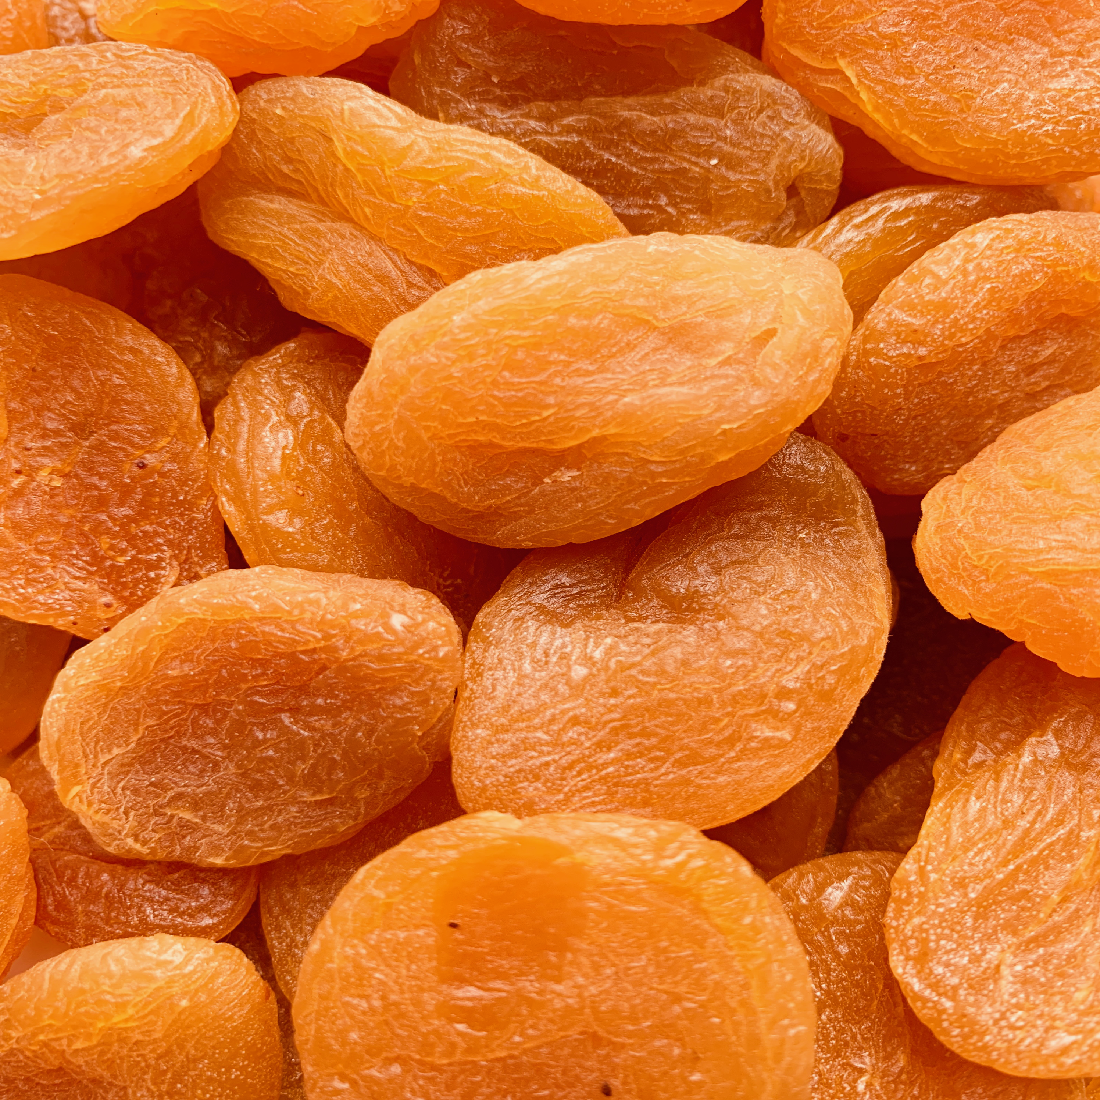 DRIED FRUIT - Apricots taste super sweet but are also a great source of vitamin A and pack a surprising amount of iron